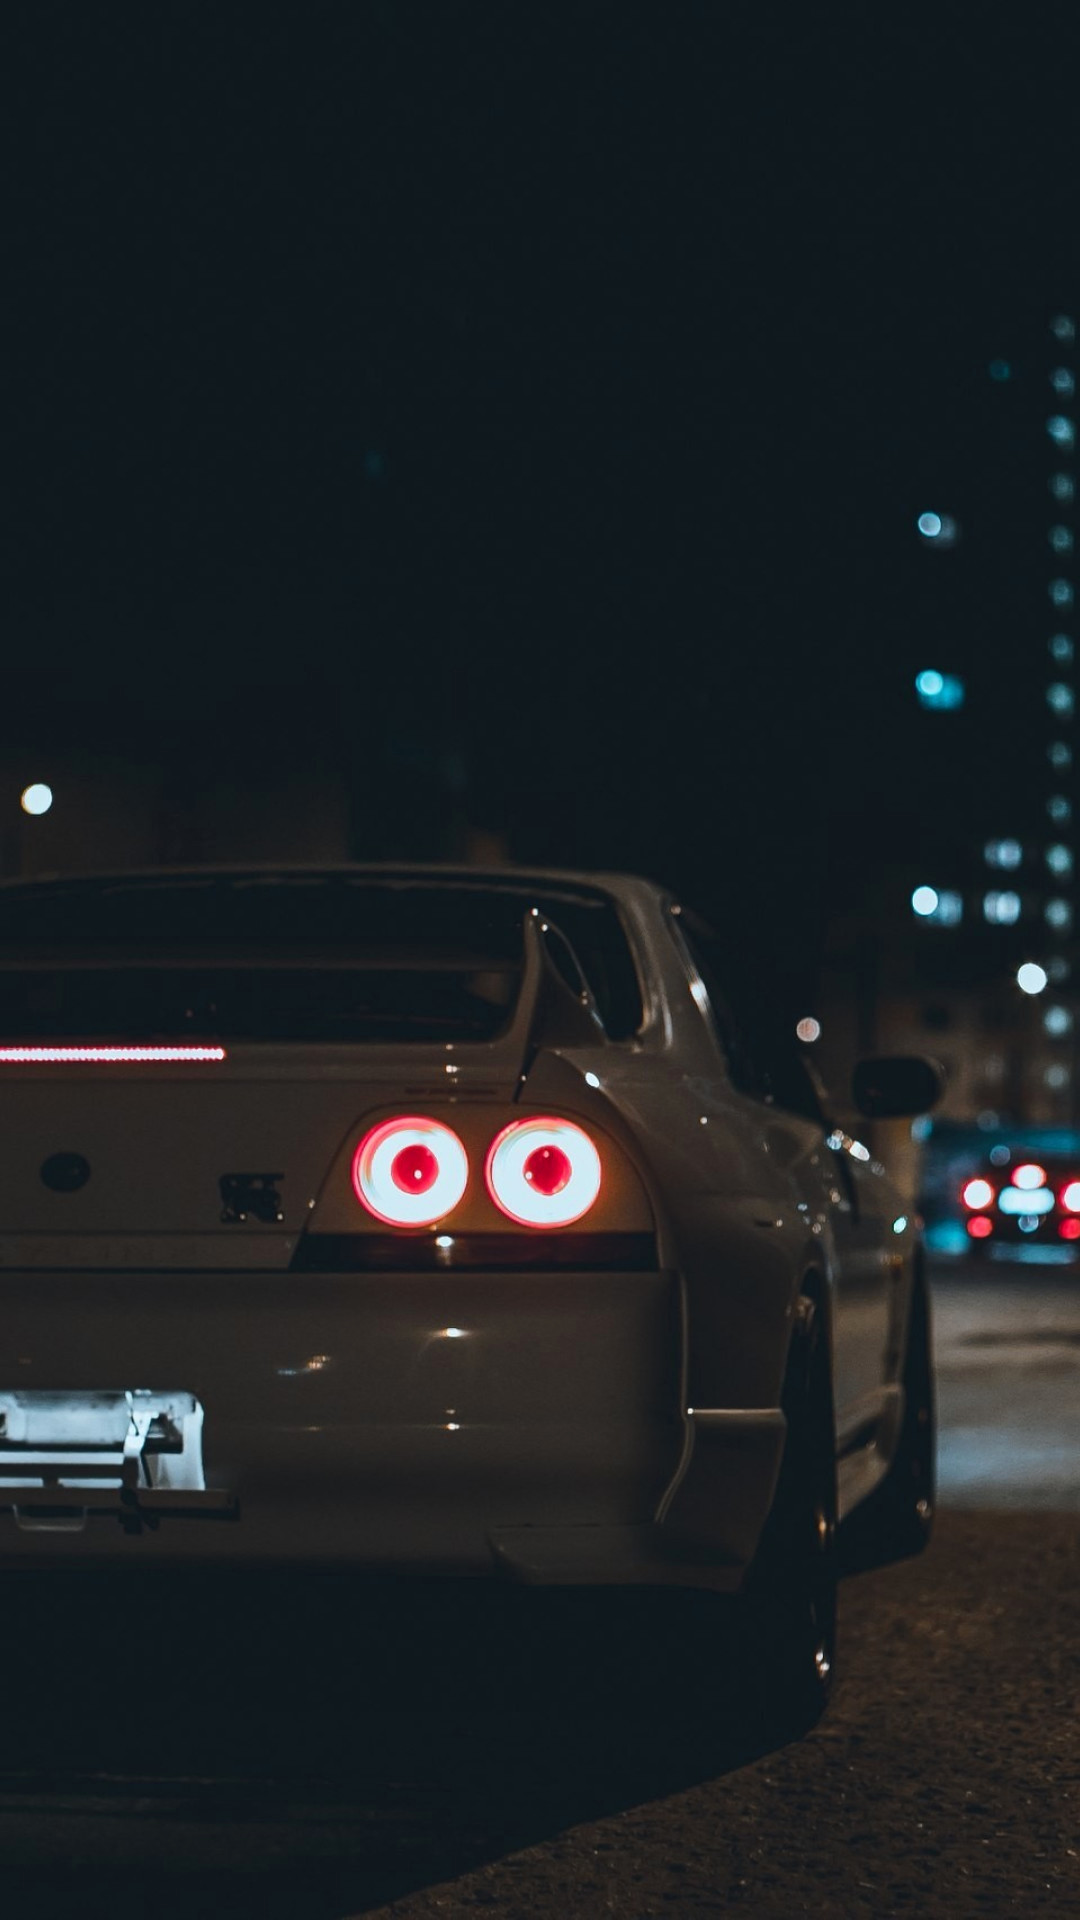 1080x1920 Jdm Car Wallpaper Iphone 6 Genuine New Iphone Gtr R34 Wallpaper Iphone 1080x1920 Wallpaper Teahub Io